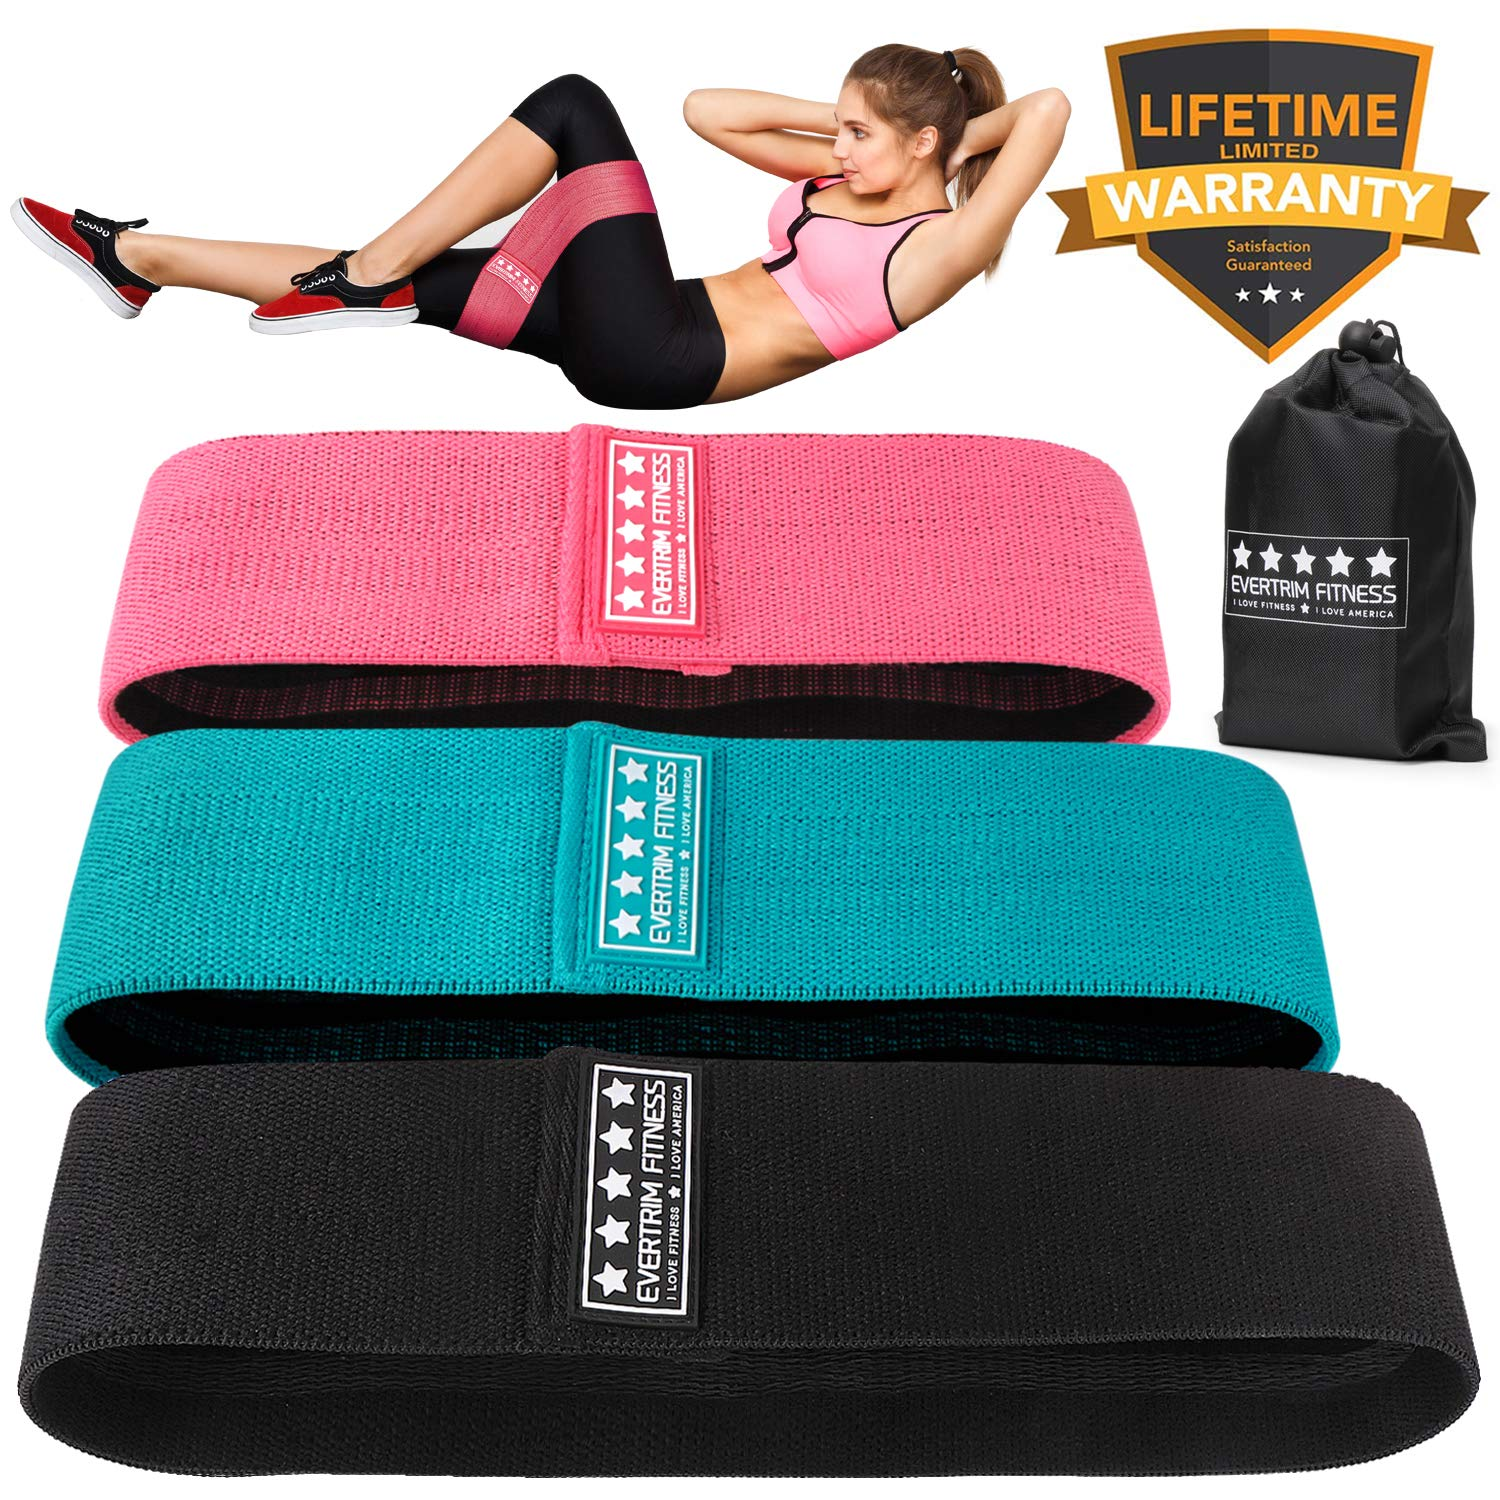 Resistance Exercise Bands for Legs and Butt, Booty Bands Hip Bands Wide Workout Bands Sports-Fitness Bands Stretch Resistance Loops Band Anti Slip Elastic (Life-time Warranty)